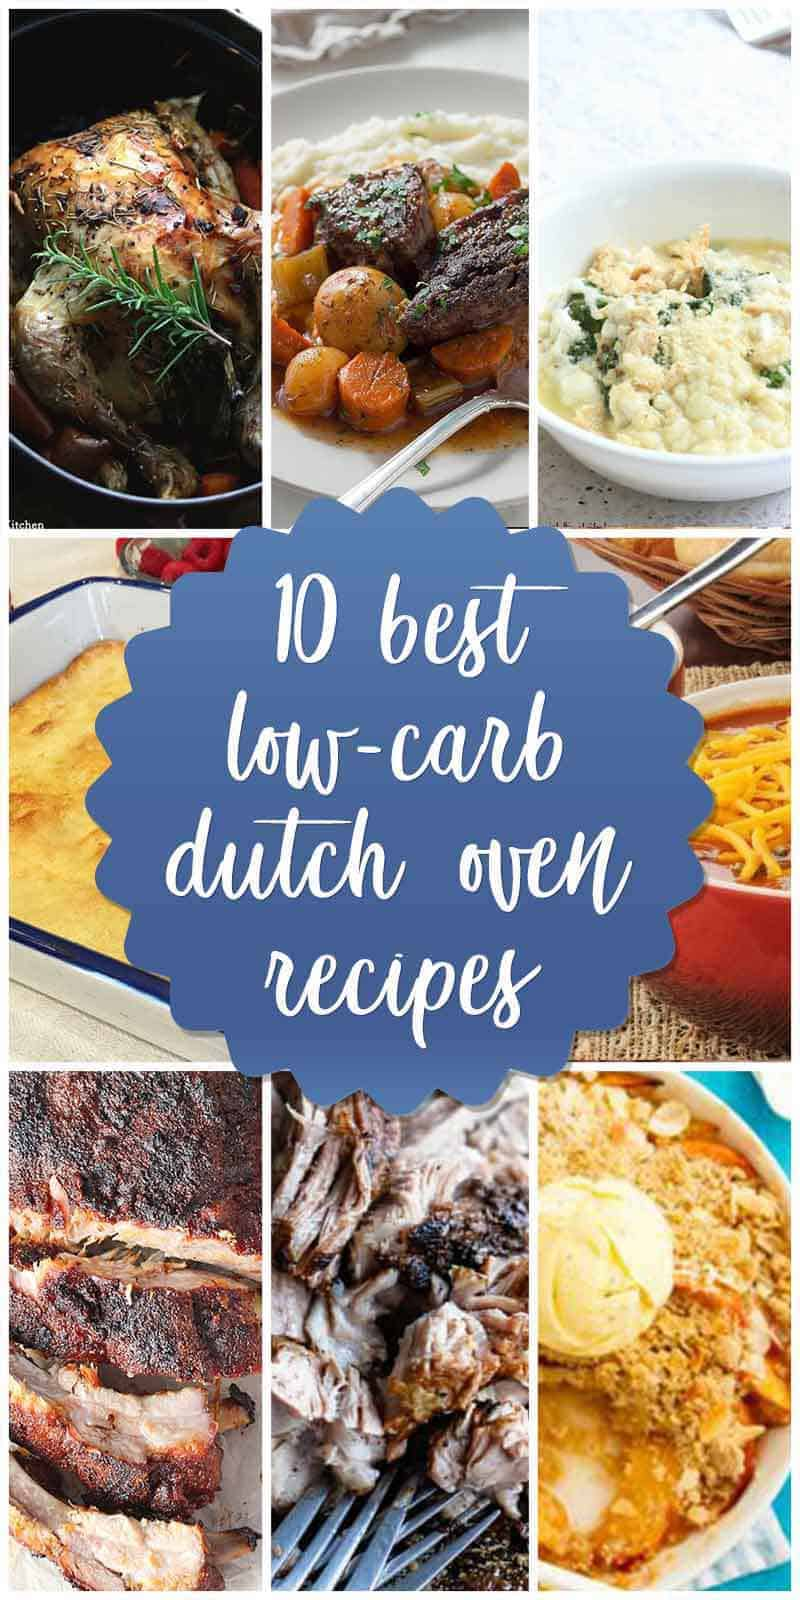 10 Best Low Carb Dutch Oven Recipes